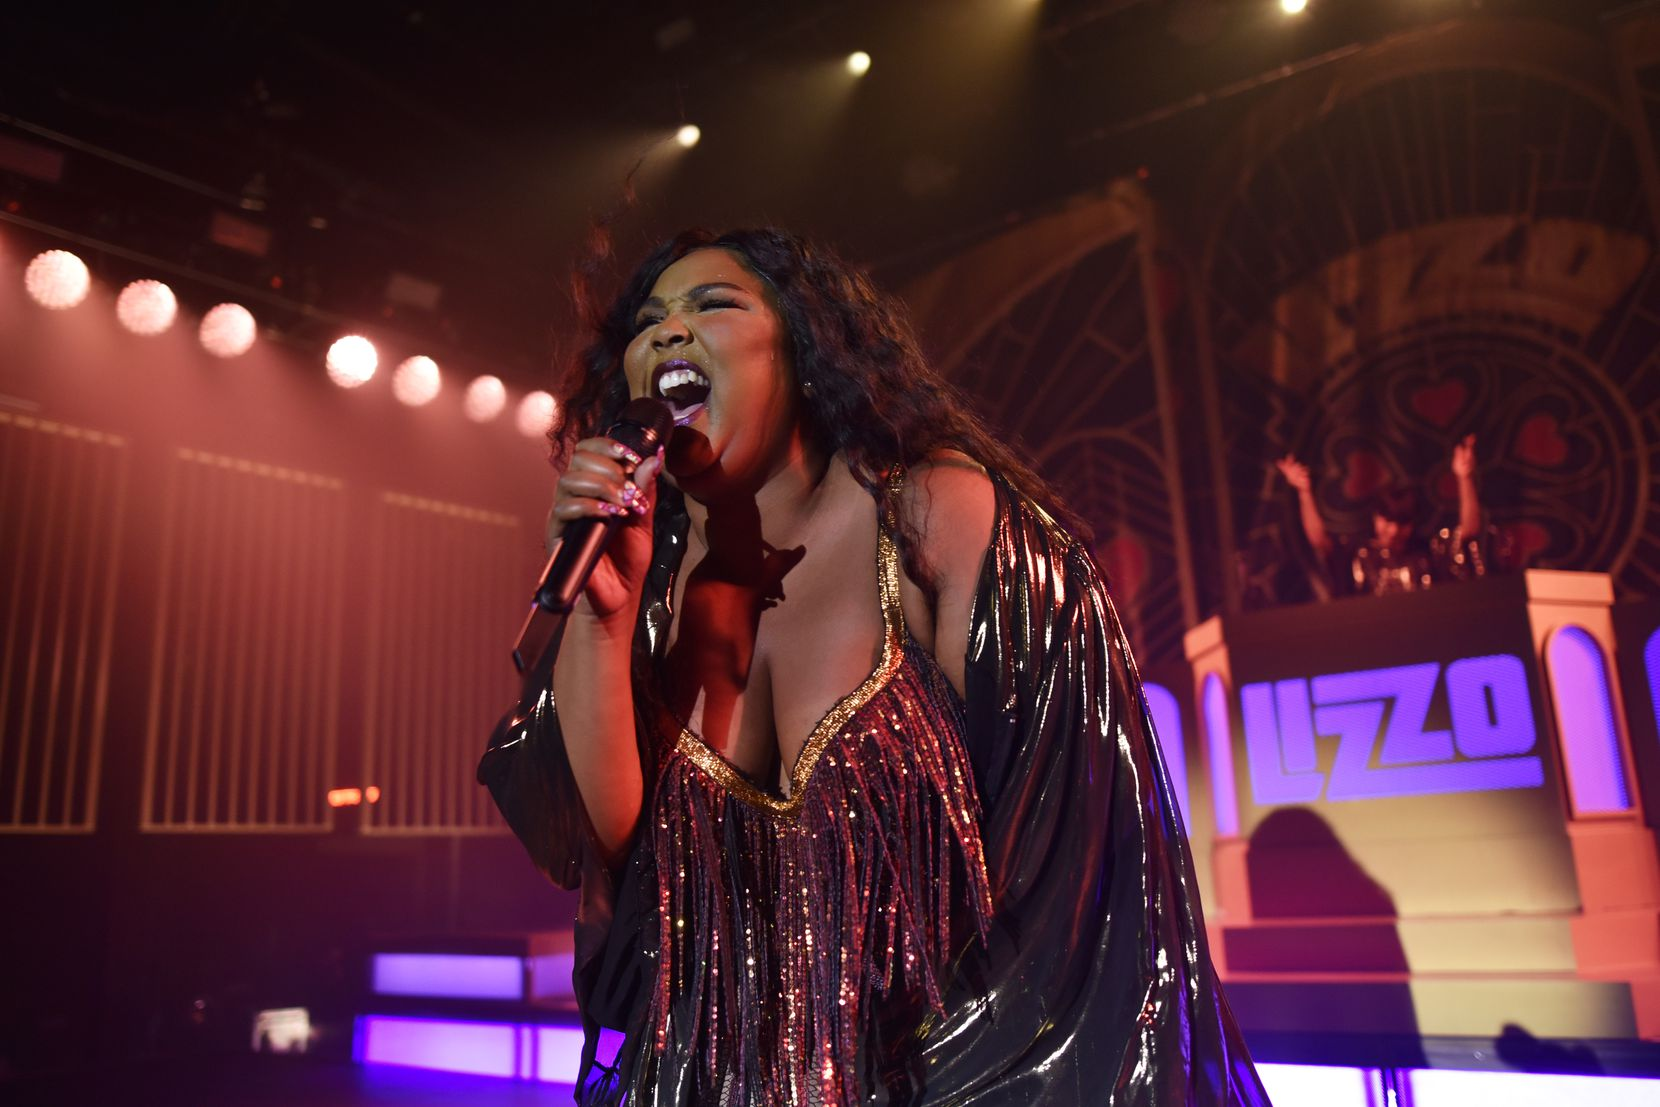 Lizzo performs at the Southside Ballroom in Dallas on Saturday evening Oct. 5, 2019.